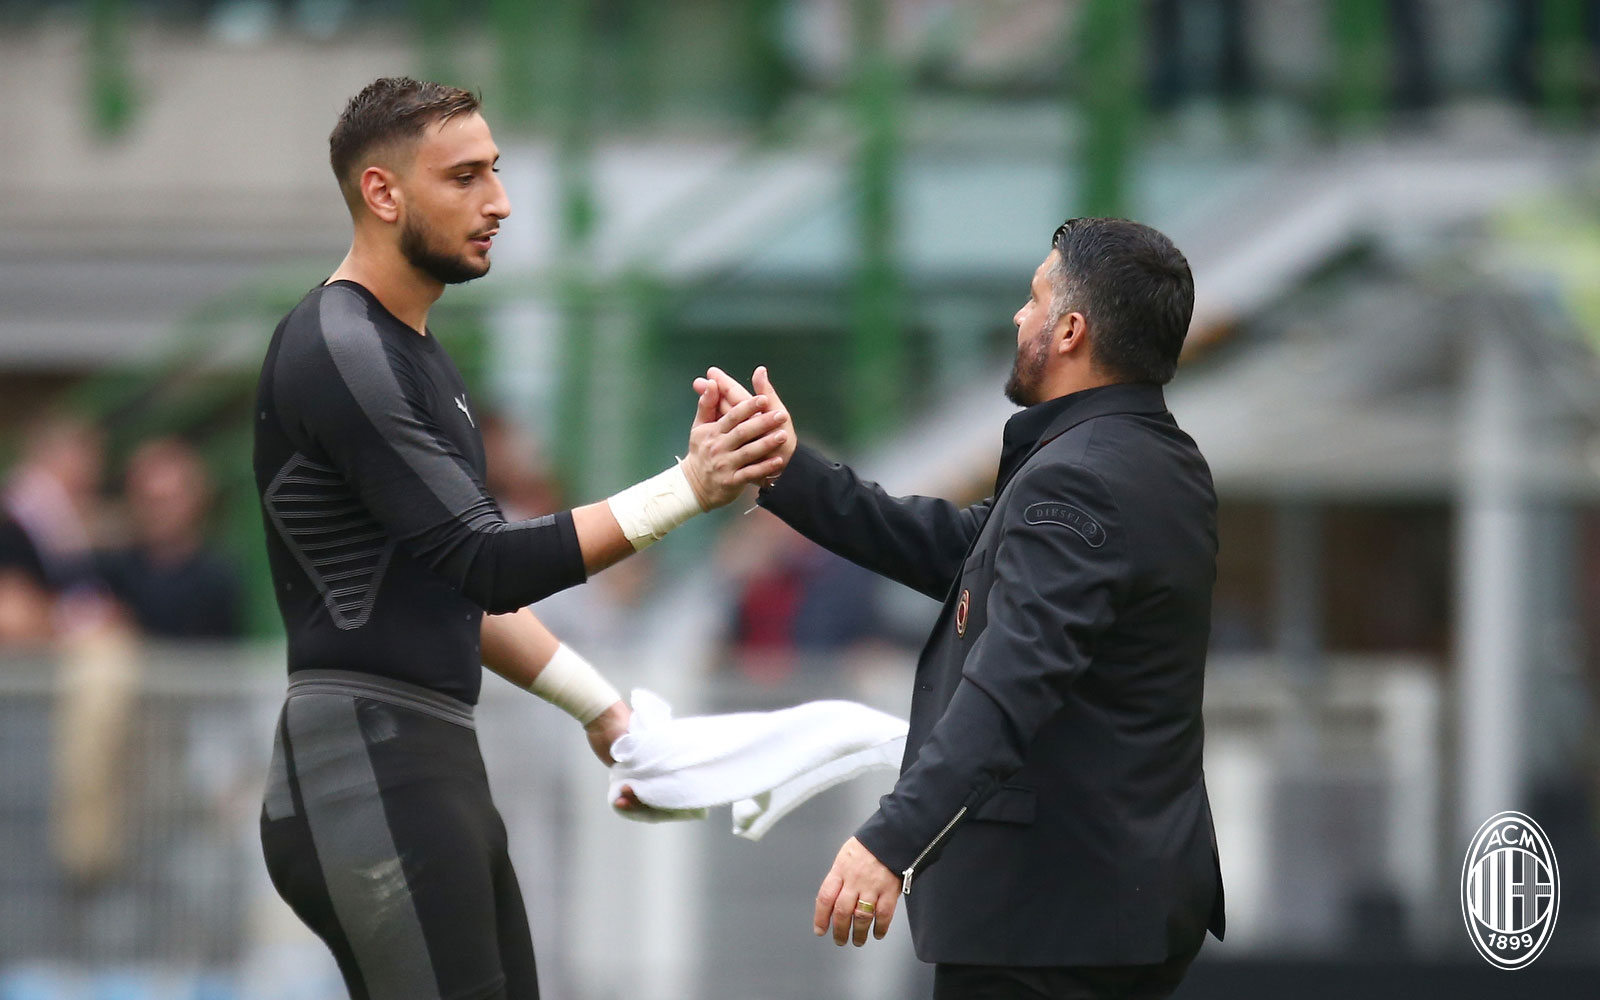 Gennaro Gattuso and Gianluigi Donnarumma at the end of Milan-Chievo at Stadio San Siro on October 7, 2018. (@acmilan.com)